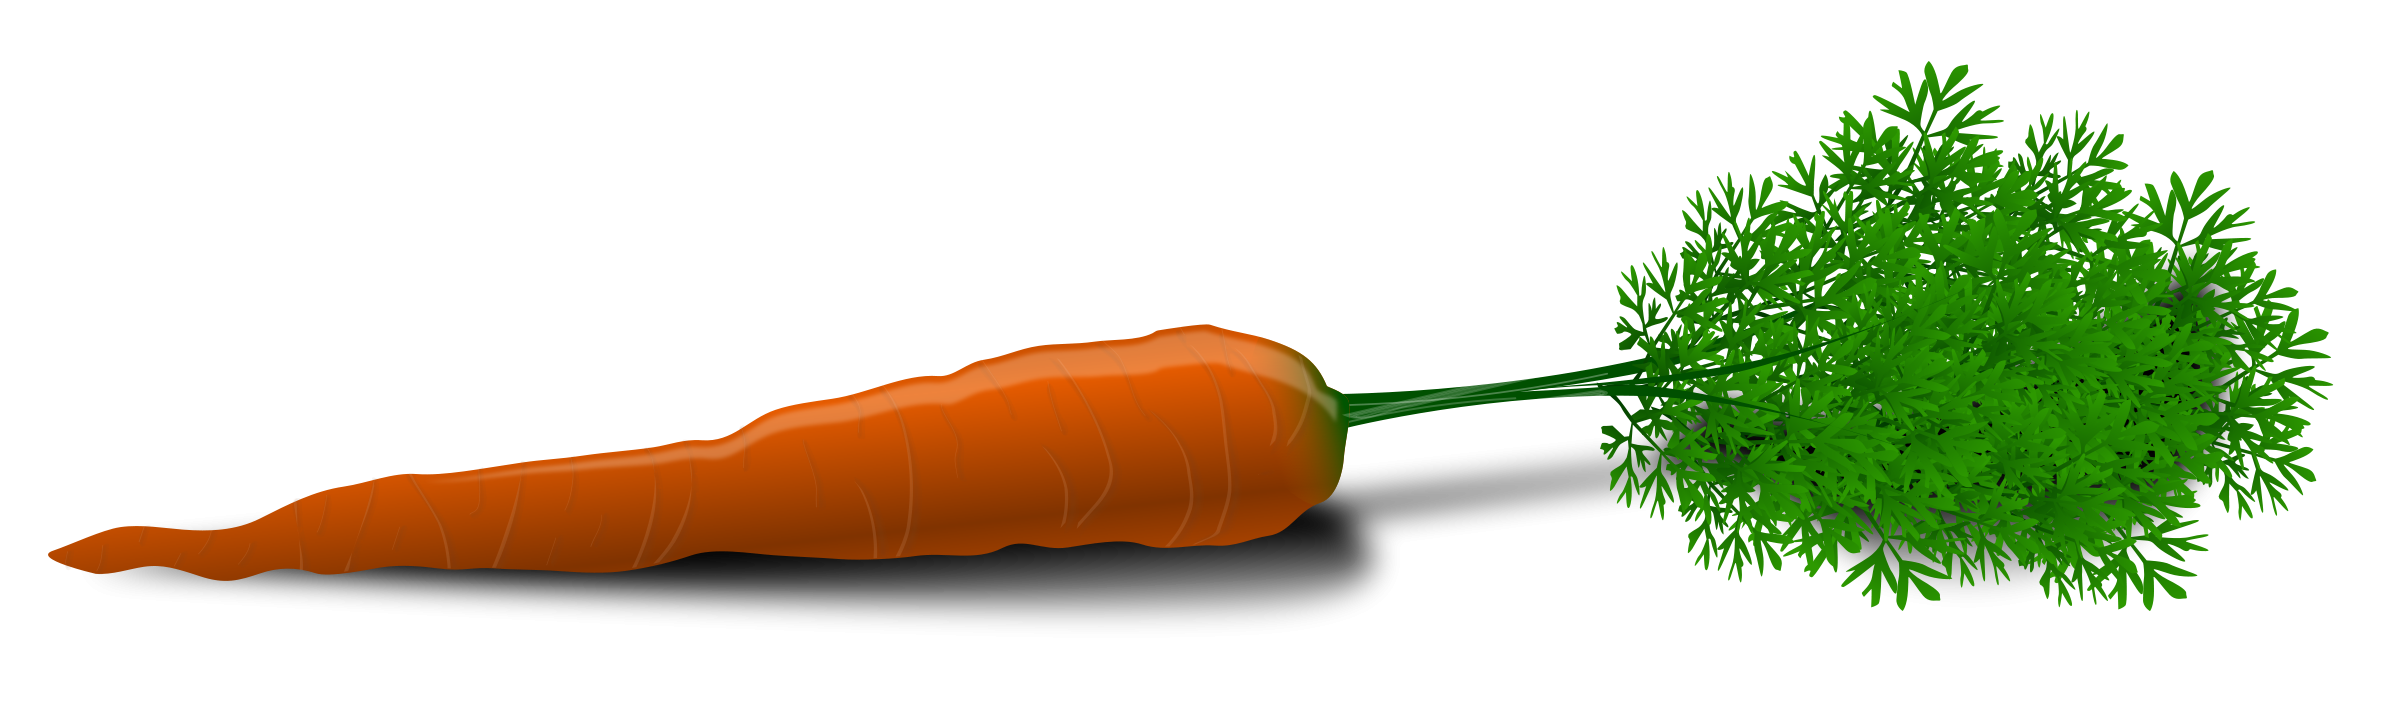 Png carrot. Image free download